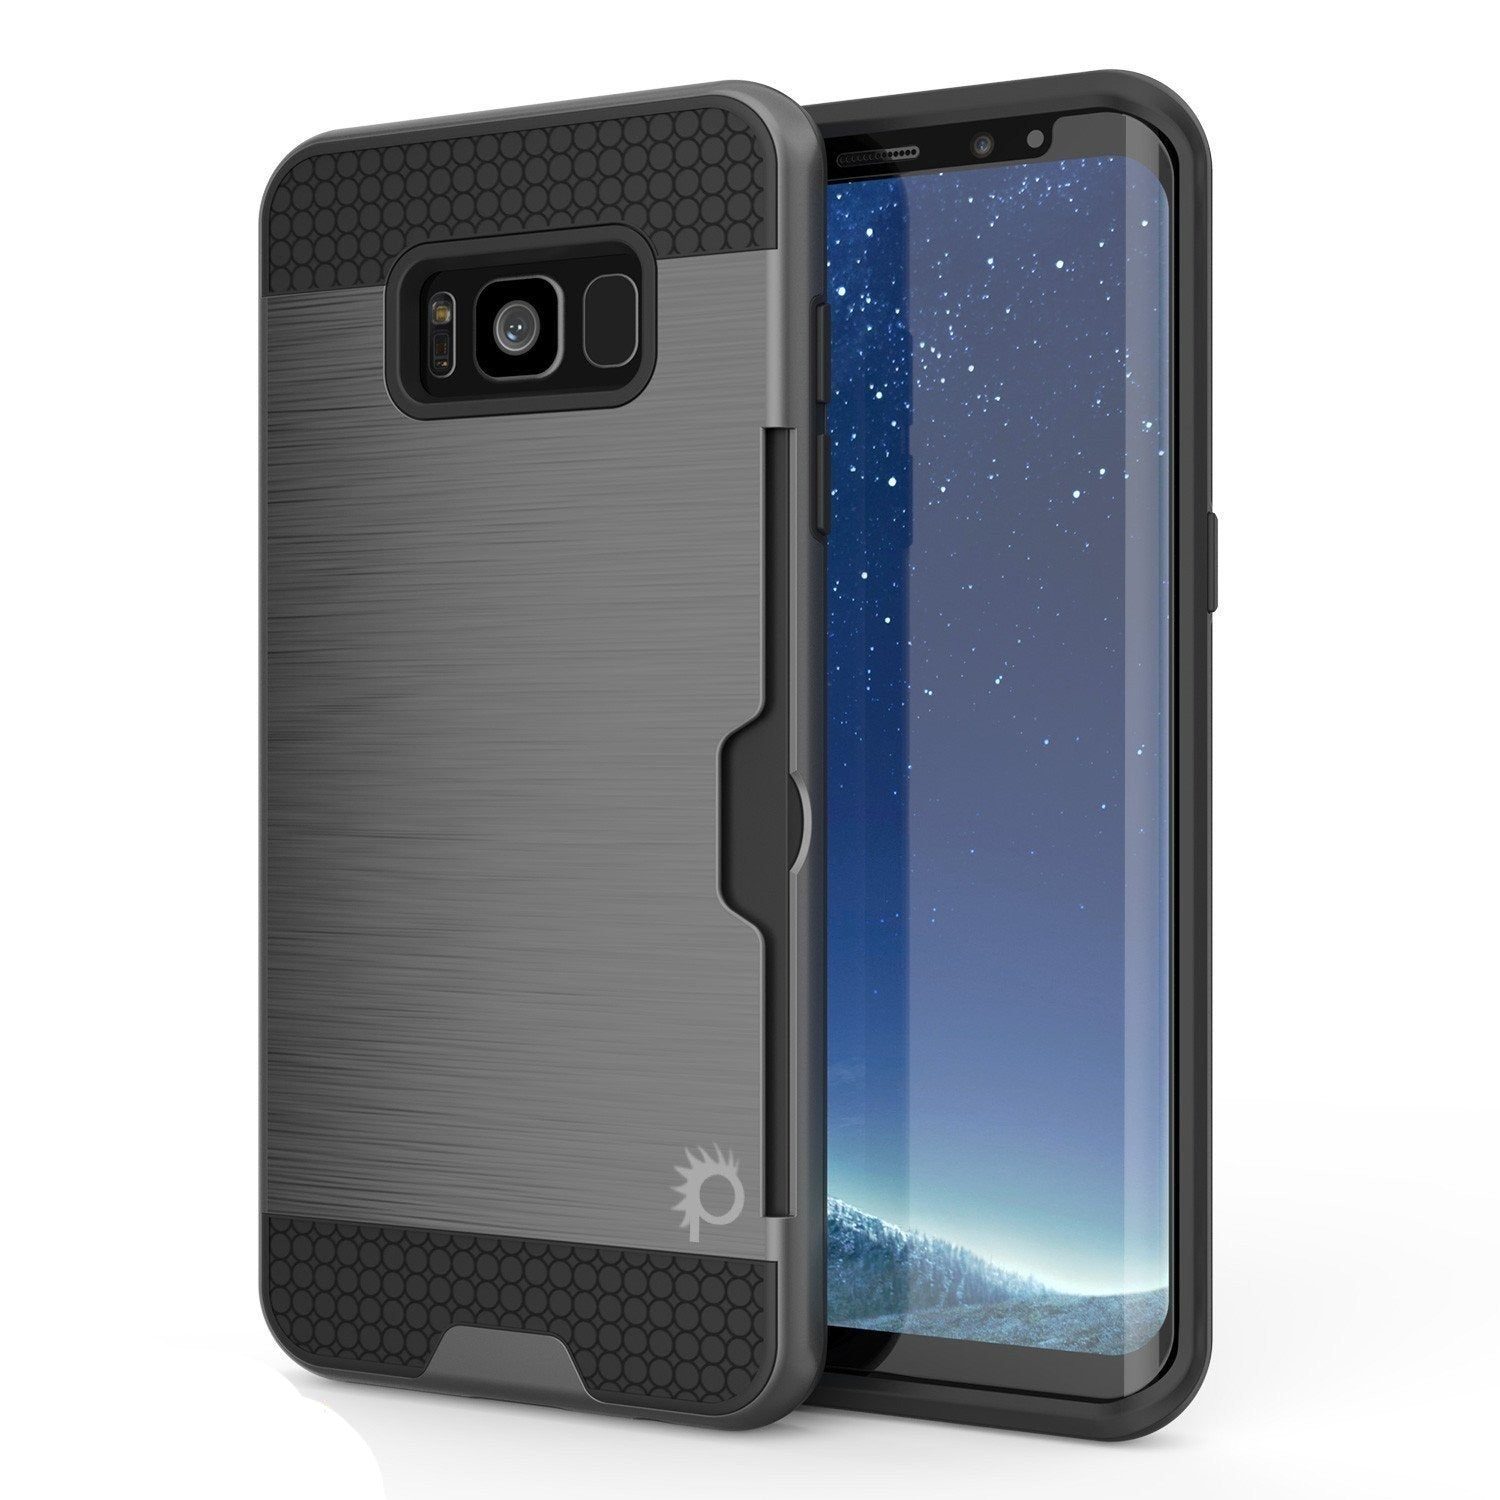 Galaxy S8 Case, PUNKcase [SLOT Series] [Slim Fit] Dual-Layer Armor Cover w/Integrated Anti-Shock System, Credit Card Slot & PUNKSHIELD Screen Protector for Samsung Galaxy S8[Grey]